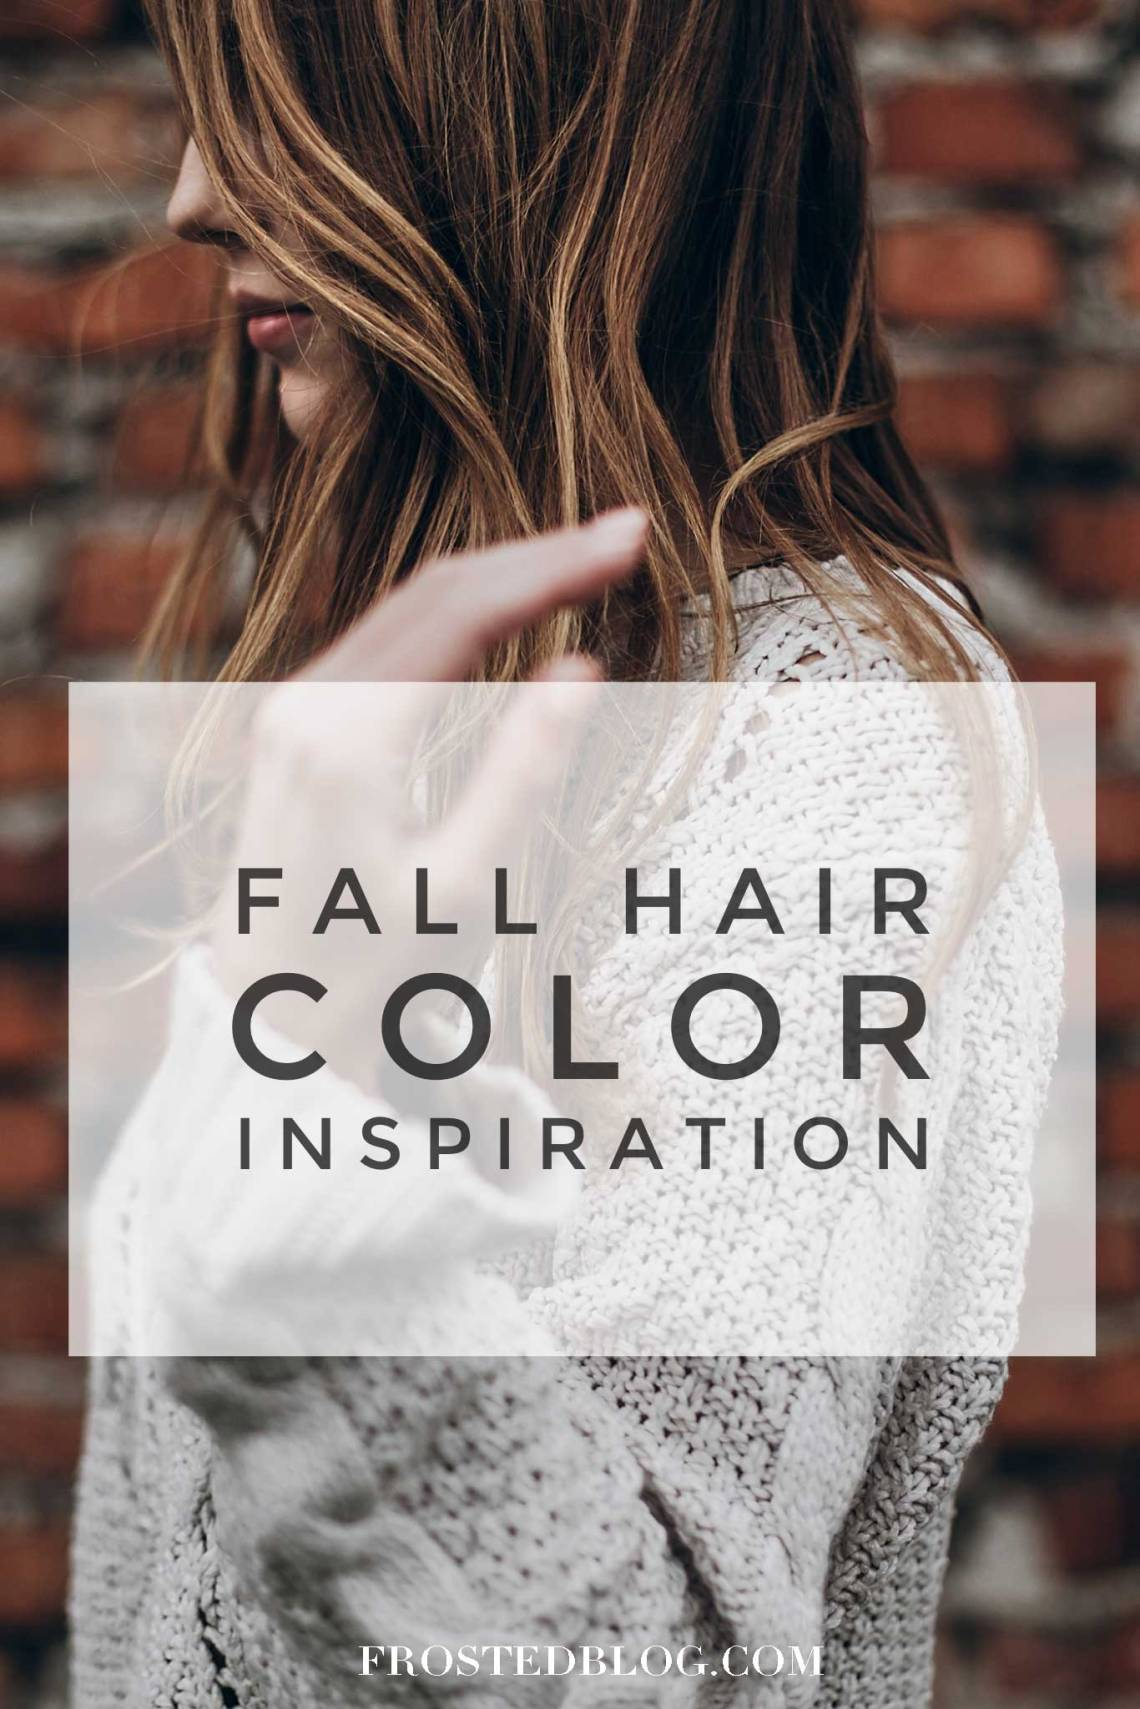 Fall Hair Color Ideas and Inspiration -- Fall hair color photos via Misty Nelson frostedblog.com